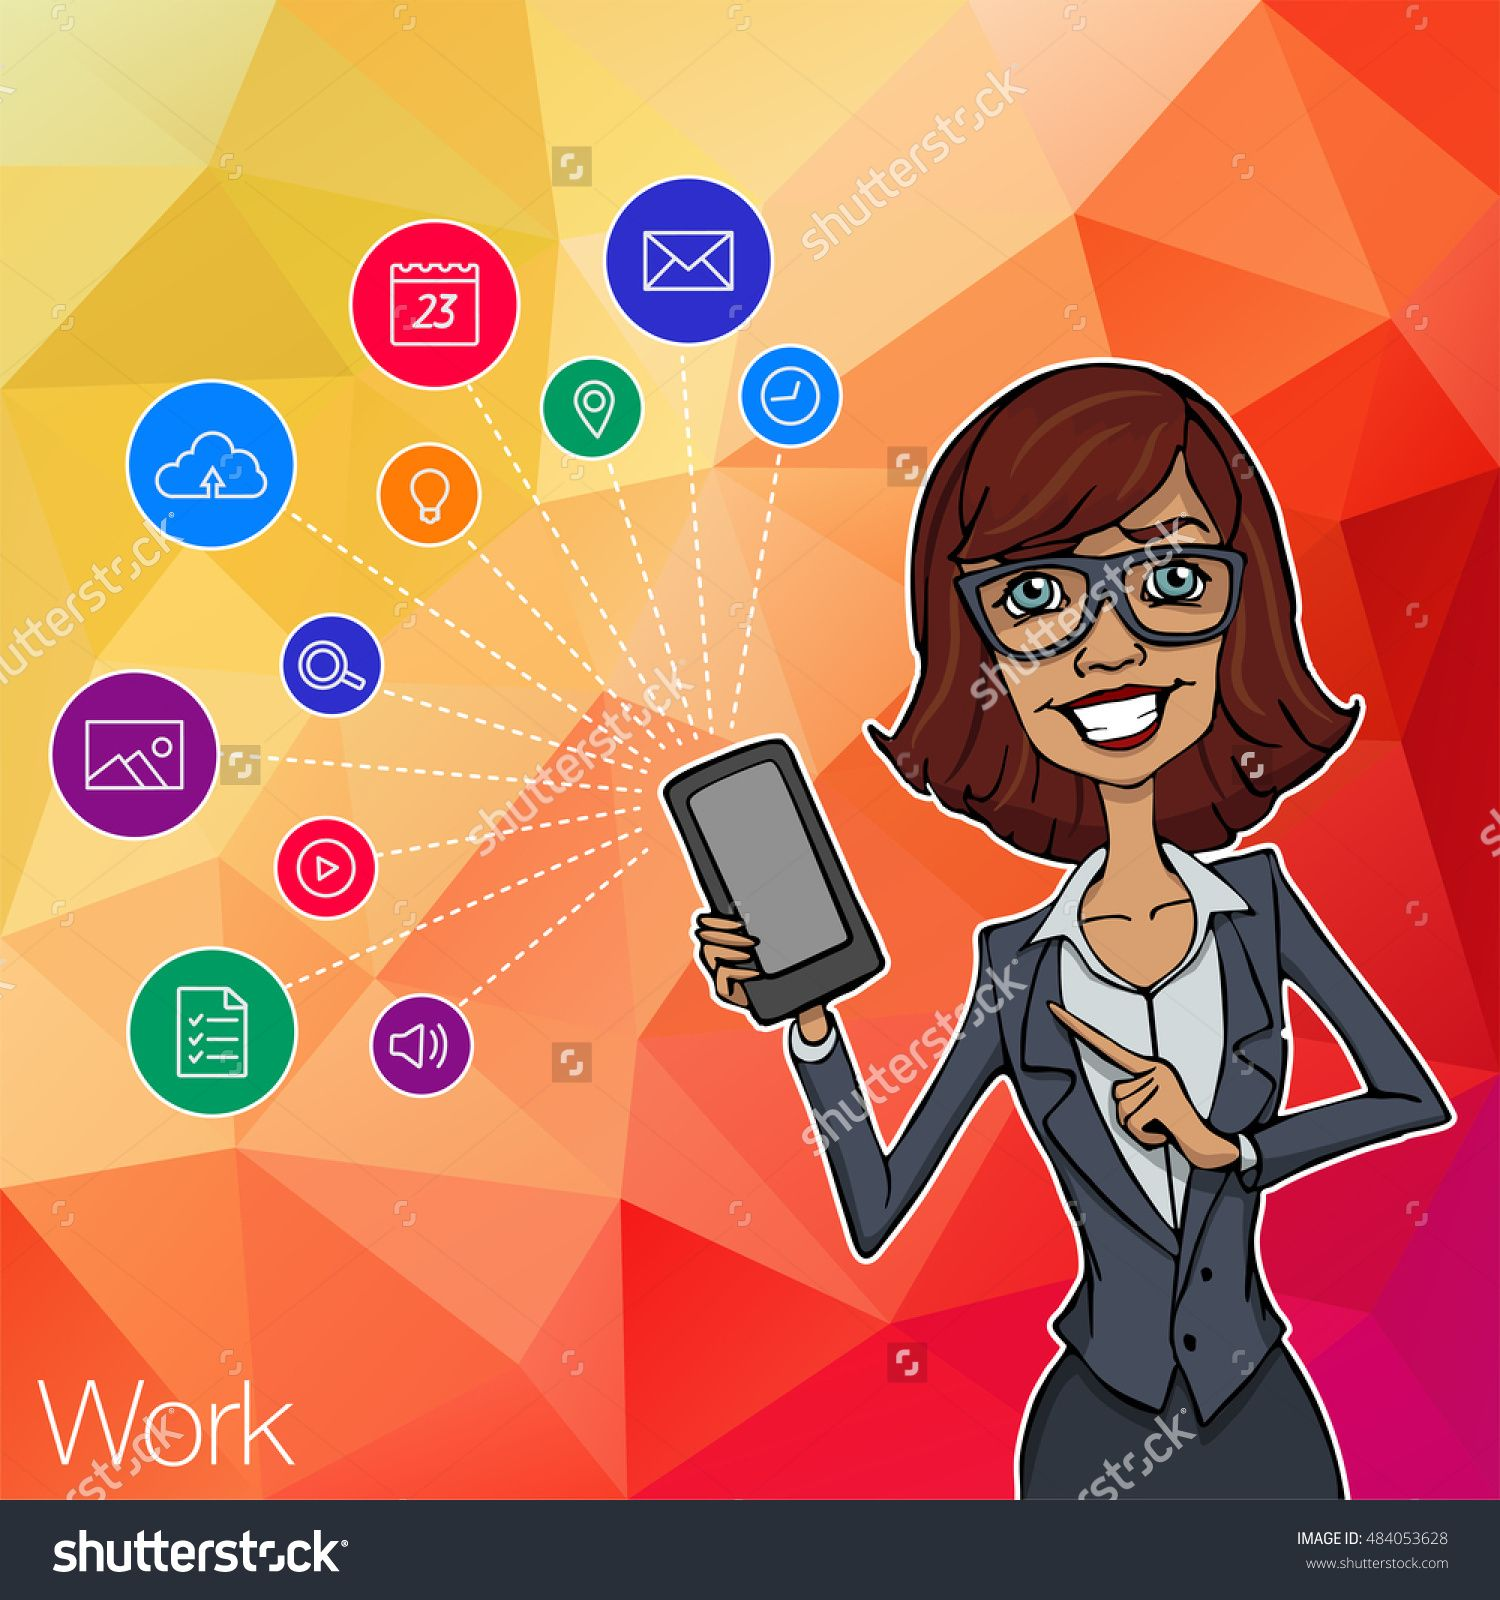 Woman Showing Smartphone Screen App For Network. Woman